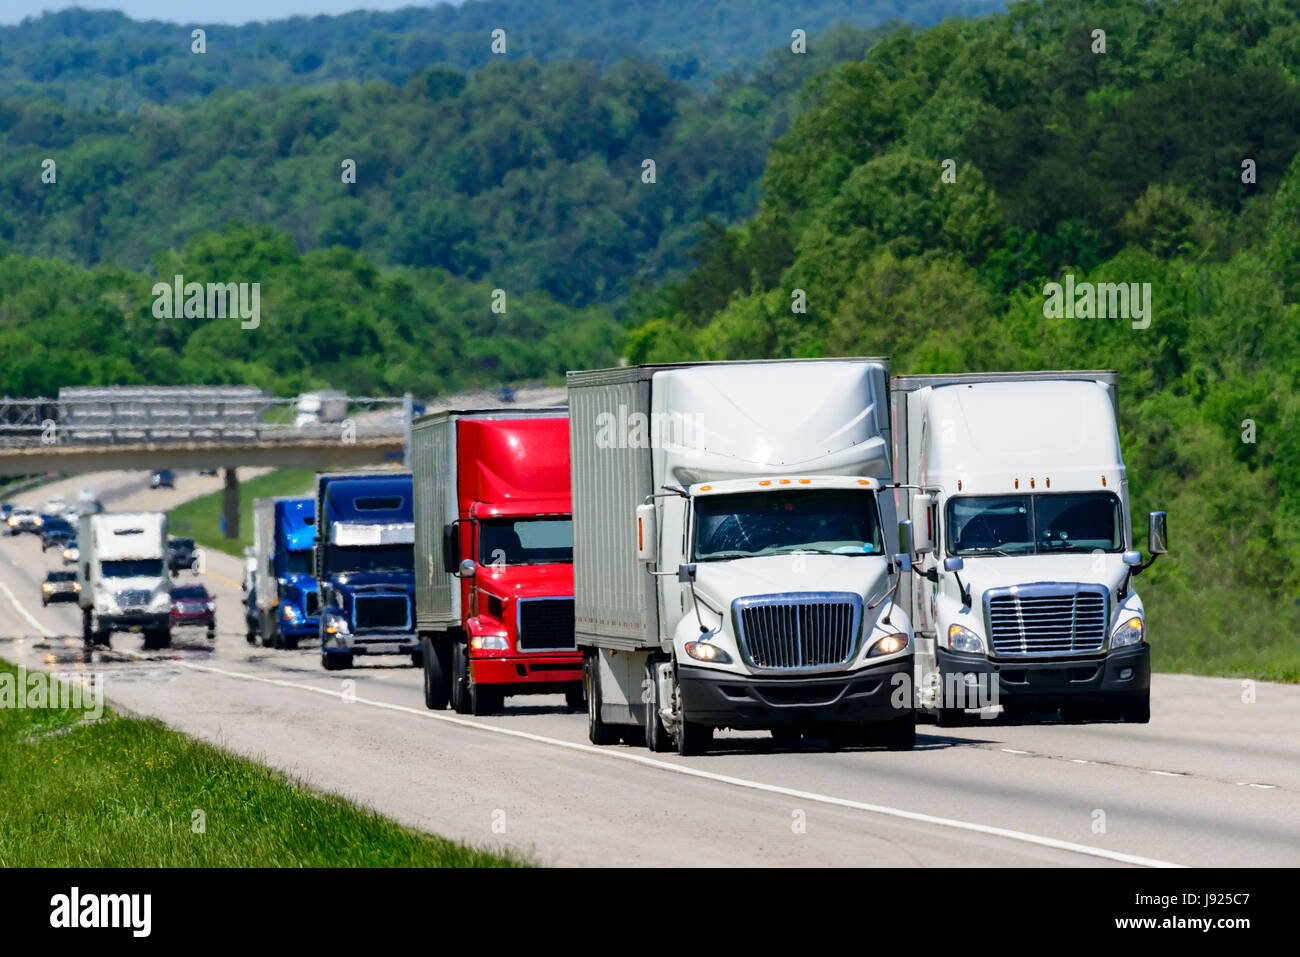 A squadron of eighteen-wheelers lead the way down an interstate highway in eastern Tennessee.  Heat waves rising - Stock Image